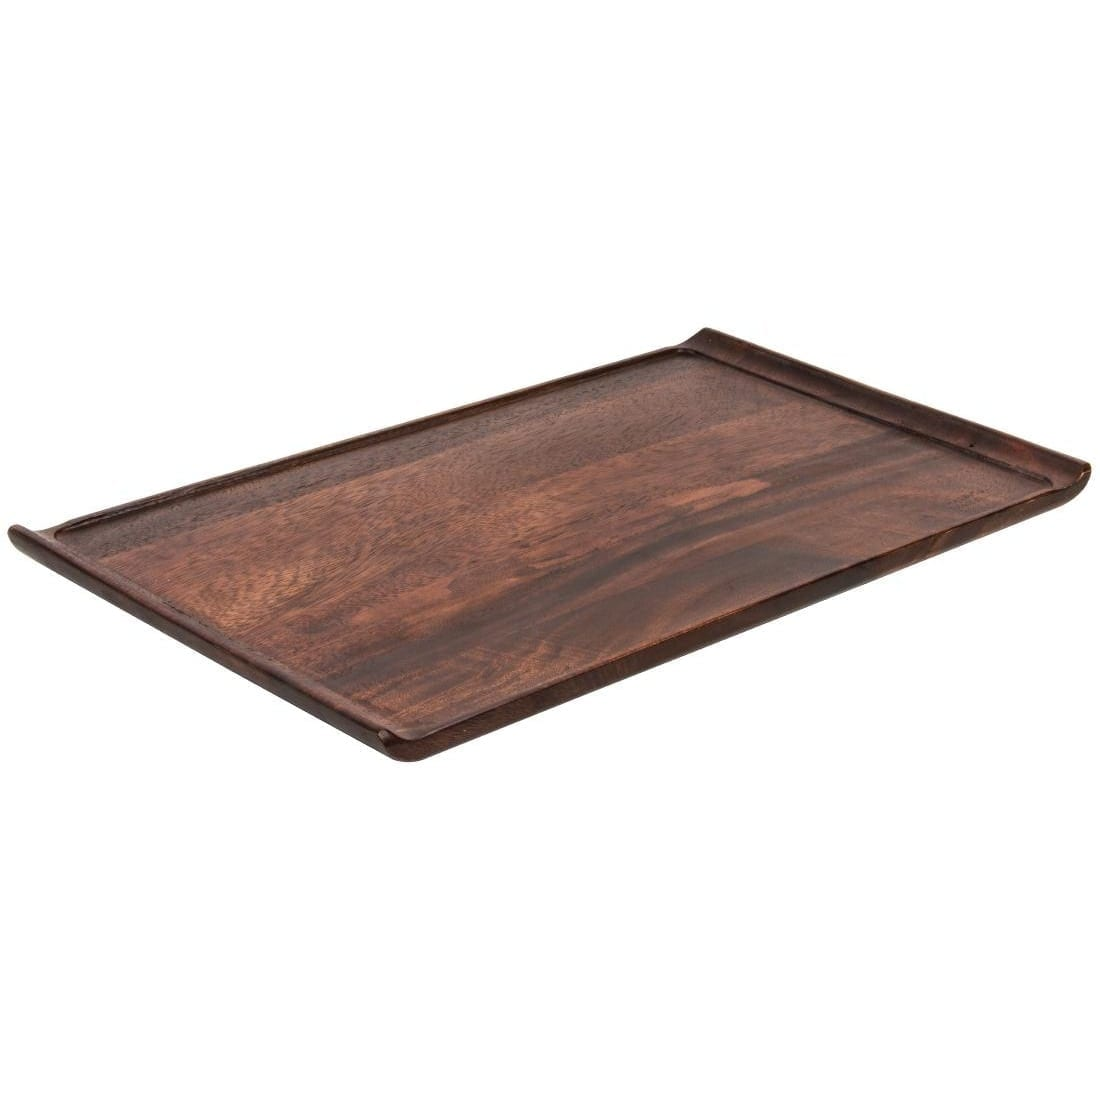 "Alchemy Wooden Buffet Tray - 530x325mm 20 7/8x12 3/4"" (Box 2) (Direct)-0"